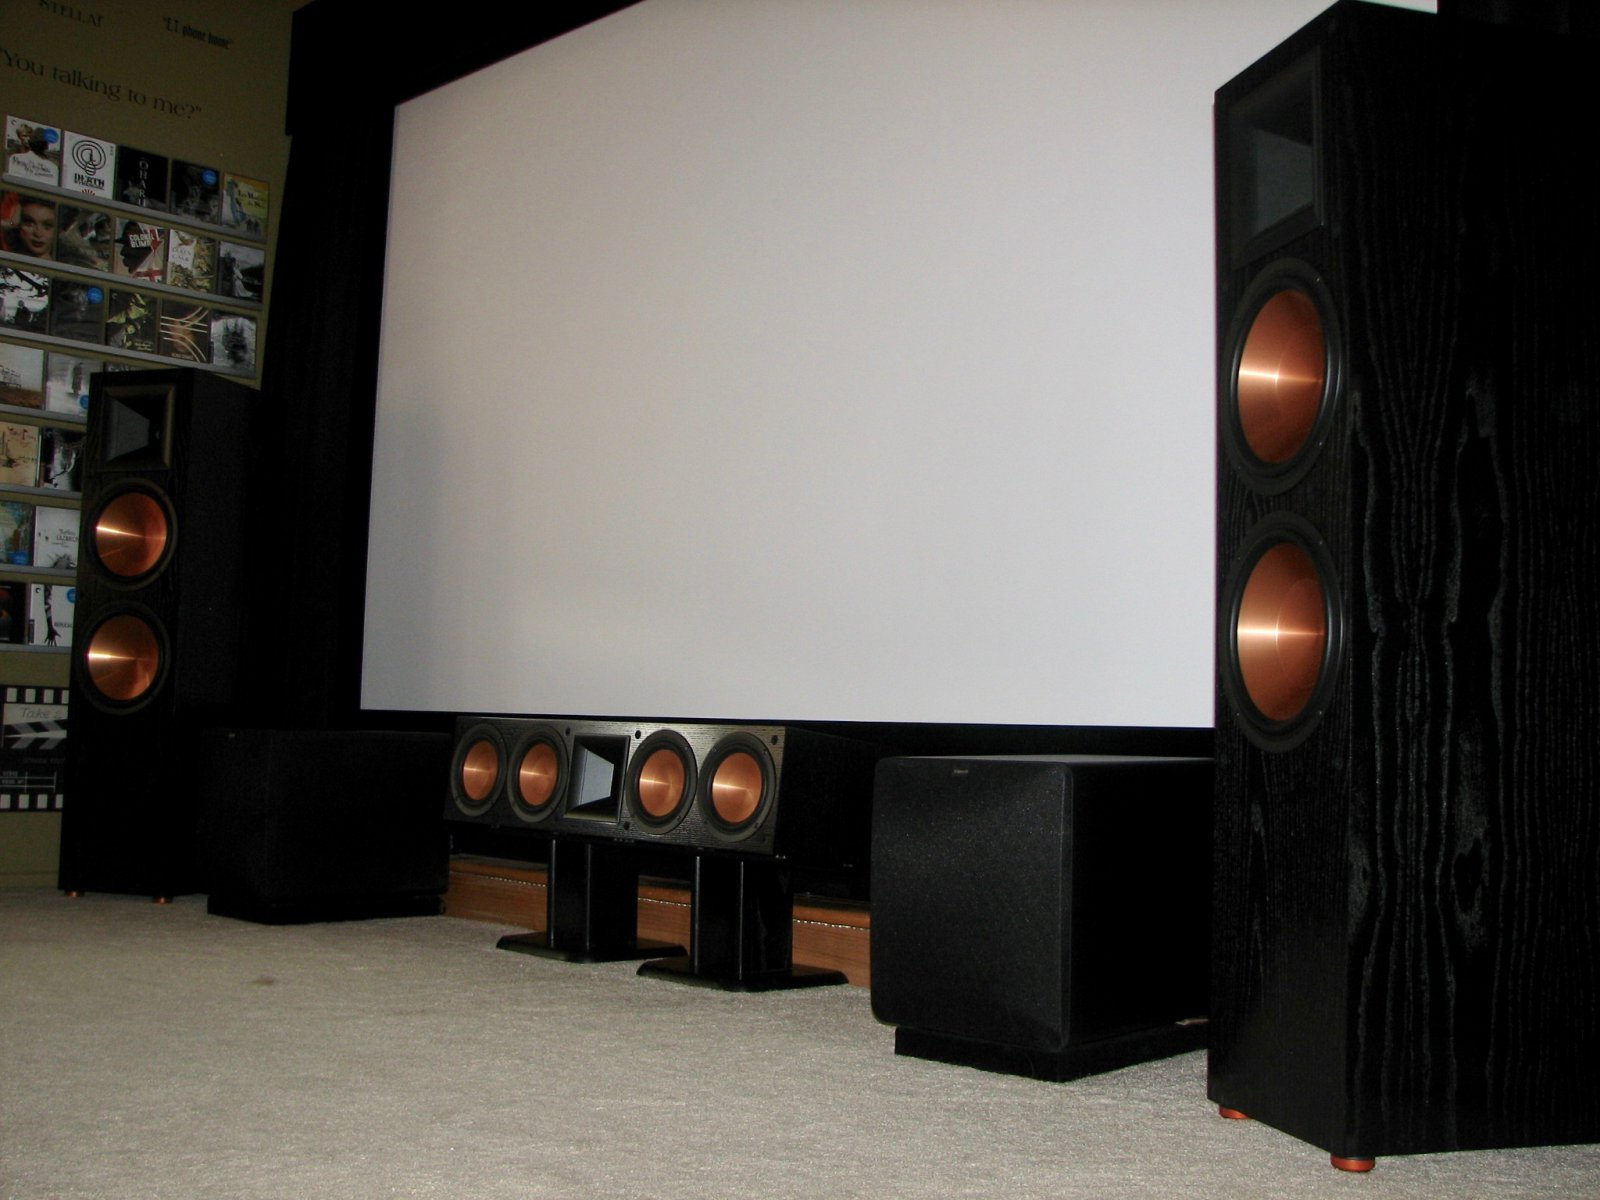 Movie room screen wall update 2 home theater showcase the klipsch audio community - Home theater screen wall design ...